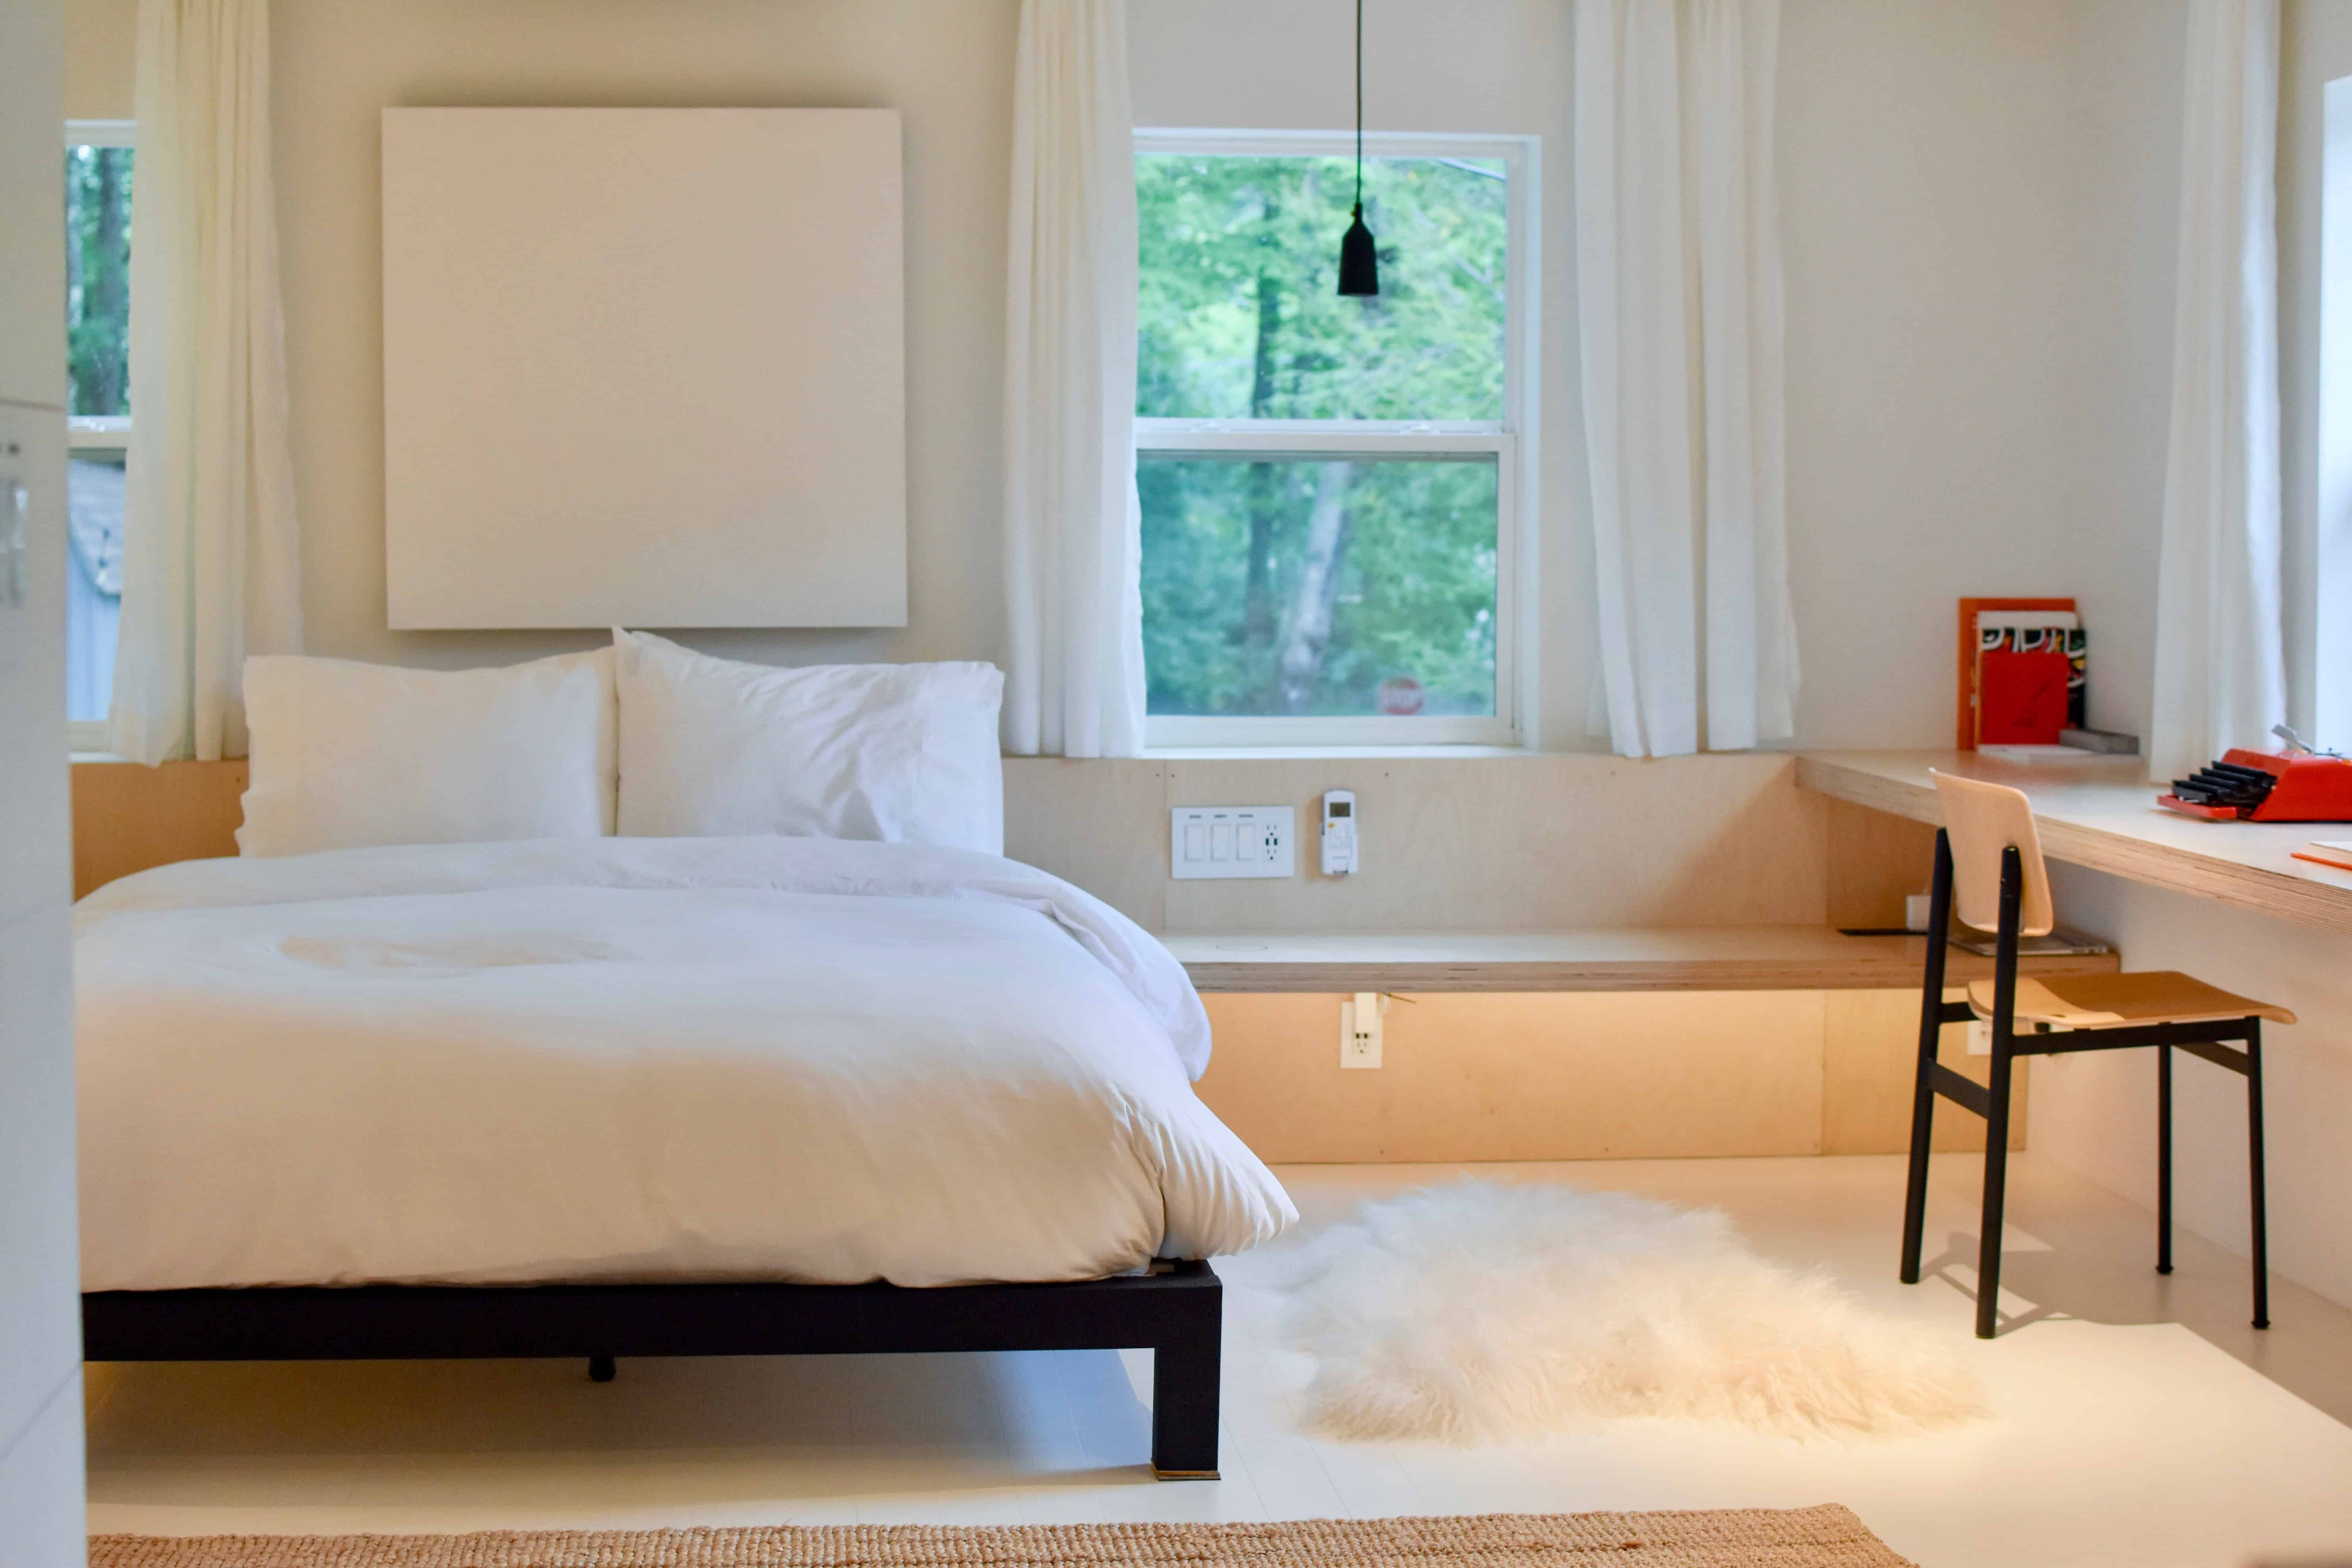 How To Clean A Mattress And Get Rid Of Stains Simply Maid